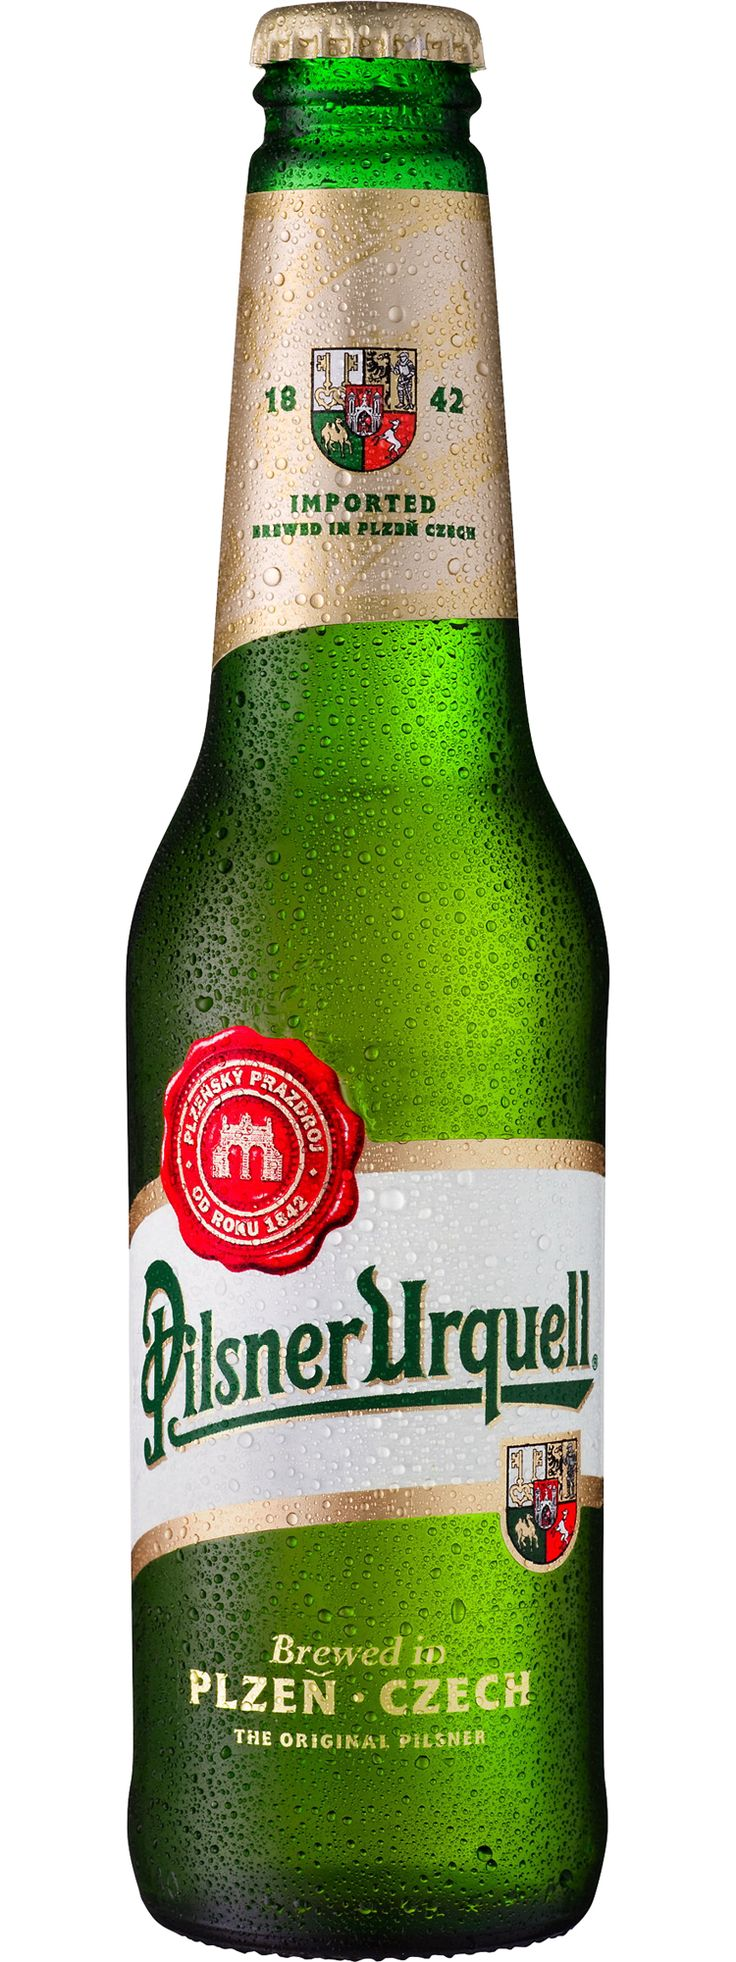 Pilsner Urquell ~ Yes indeed, I endorse this flavor.  My fave in the 'clear beers'.